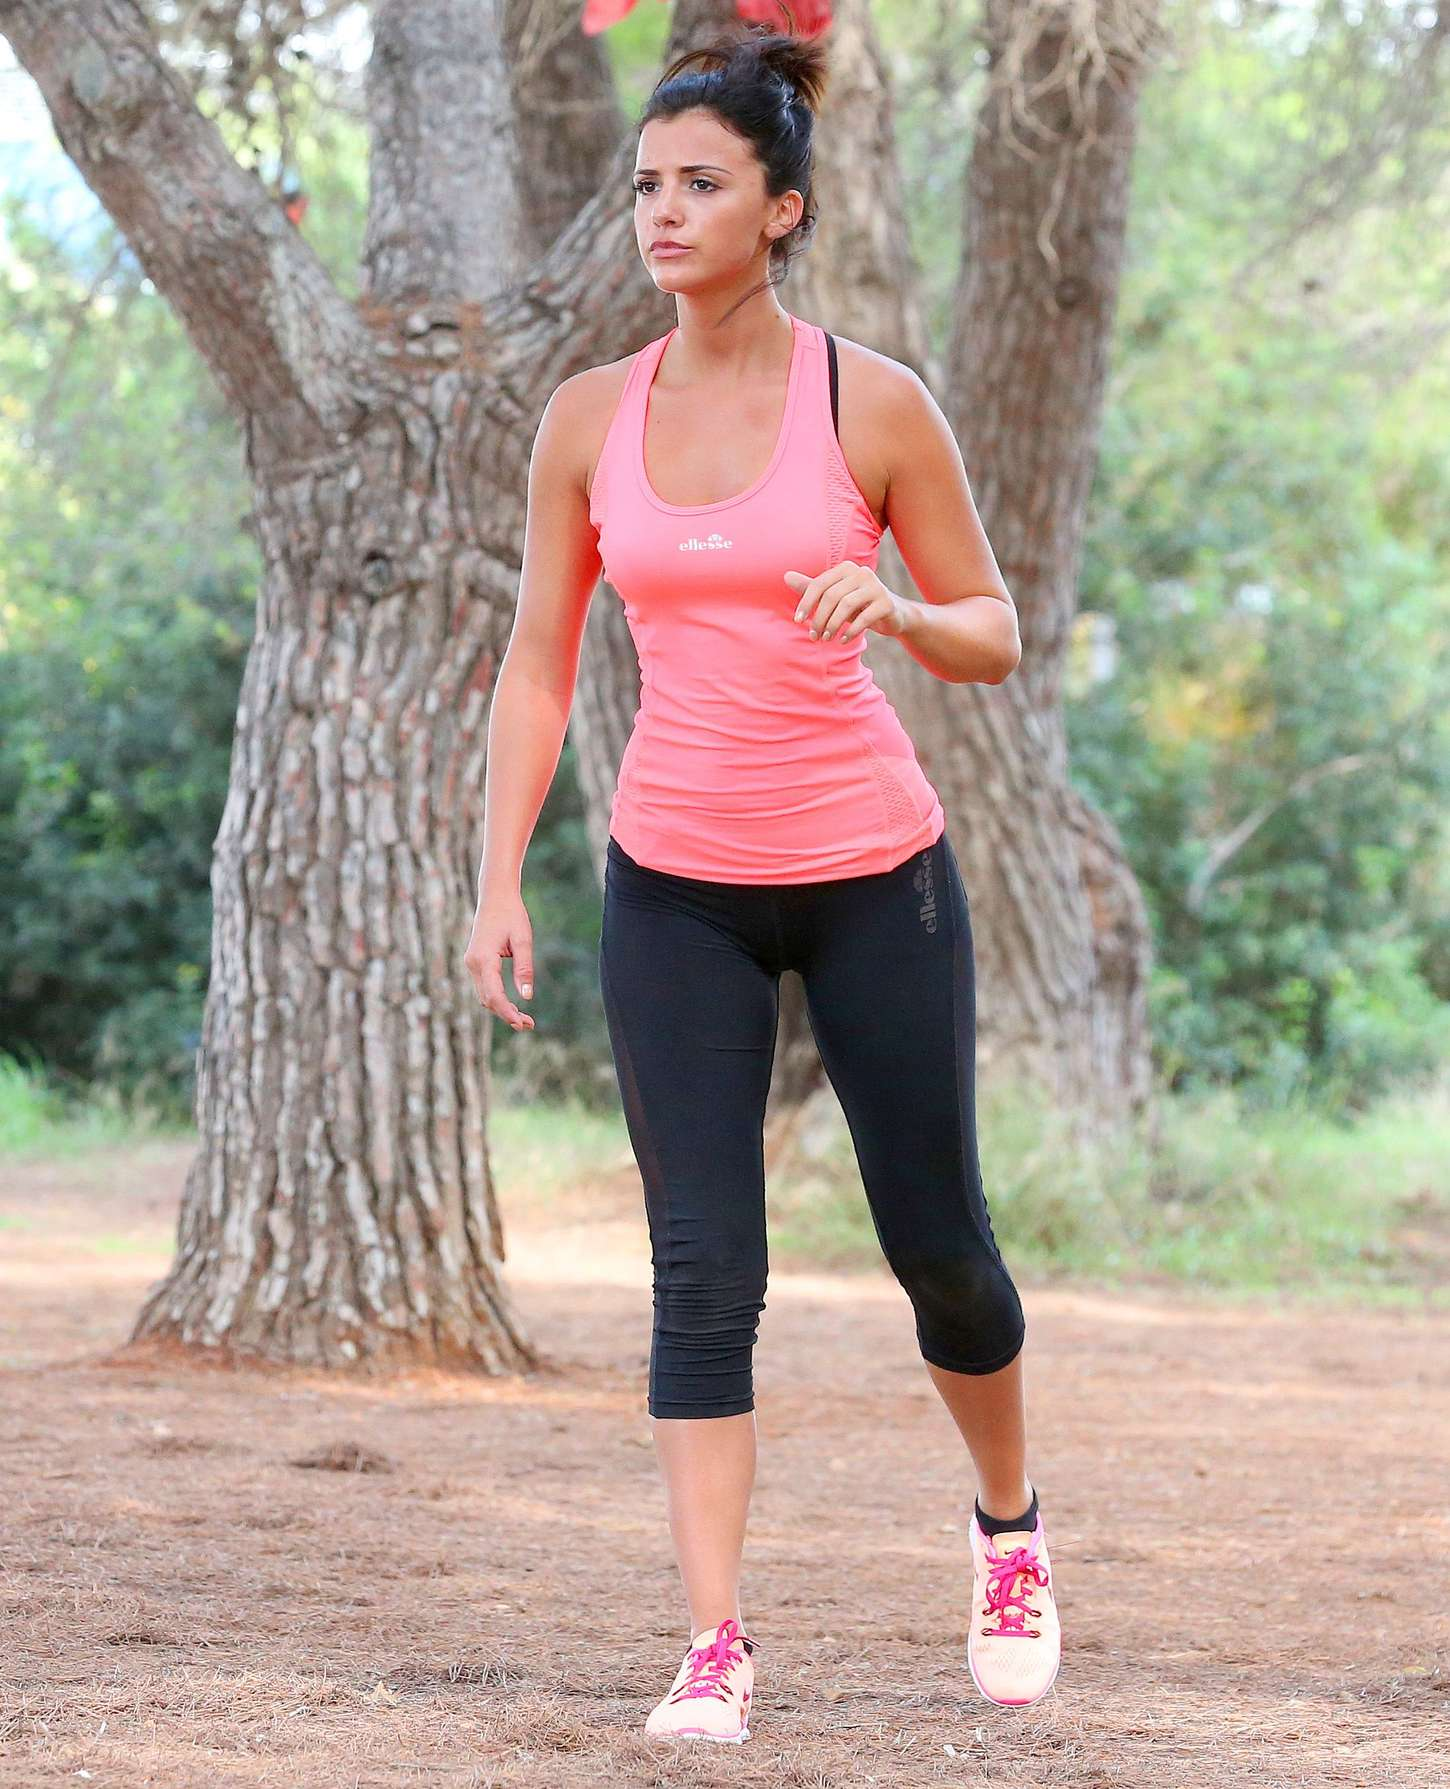 Lucy Mecklenburgh 2015 : Lucy Mecklenburgh in Tights Workout -08